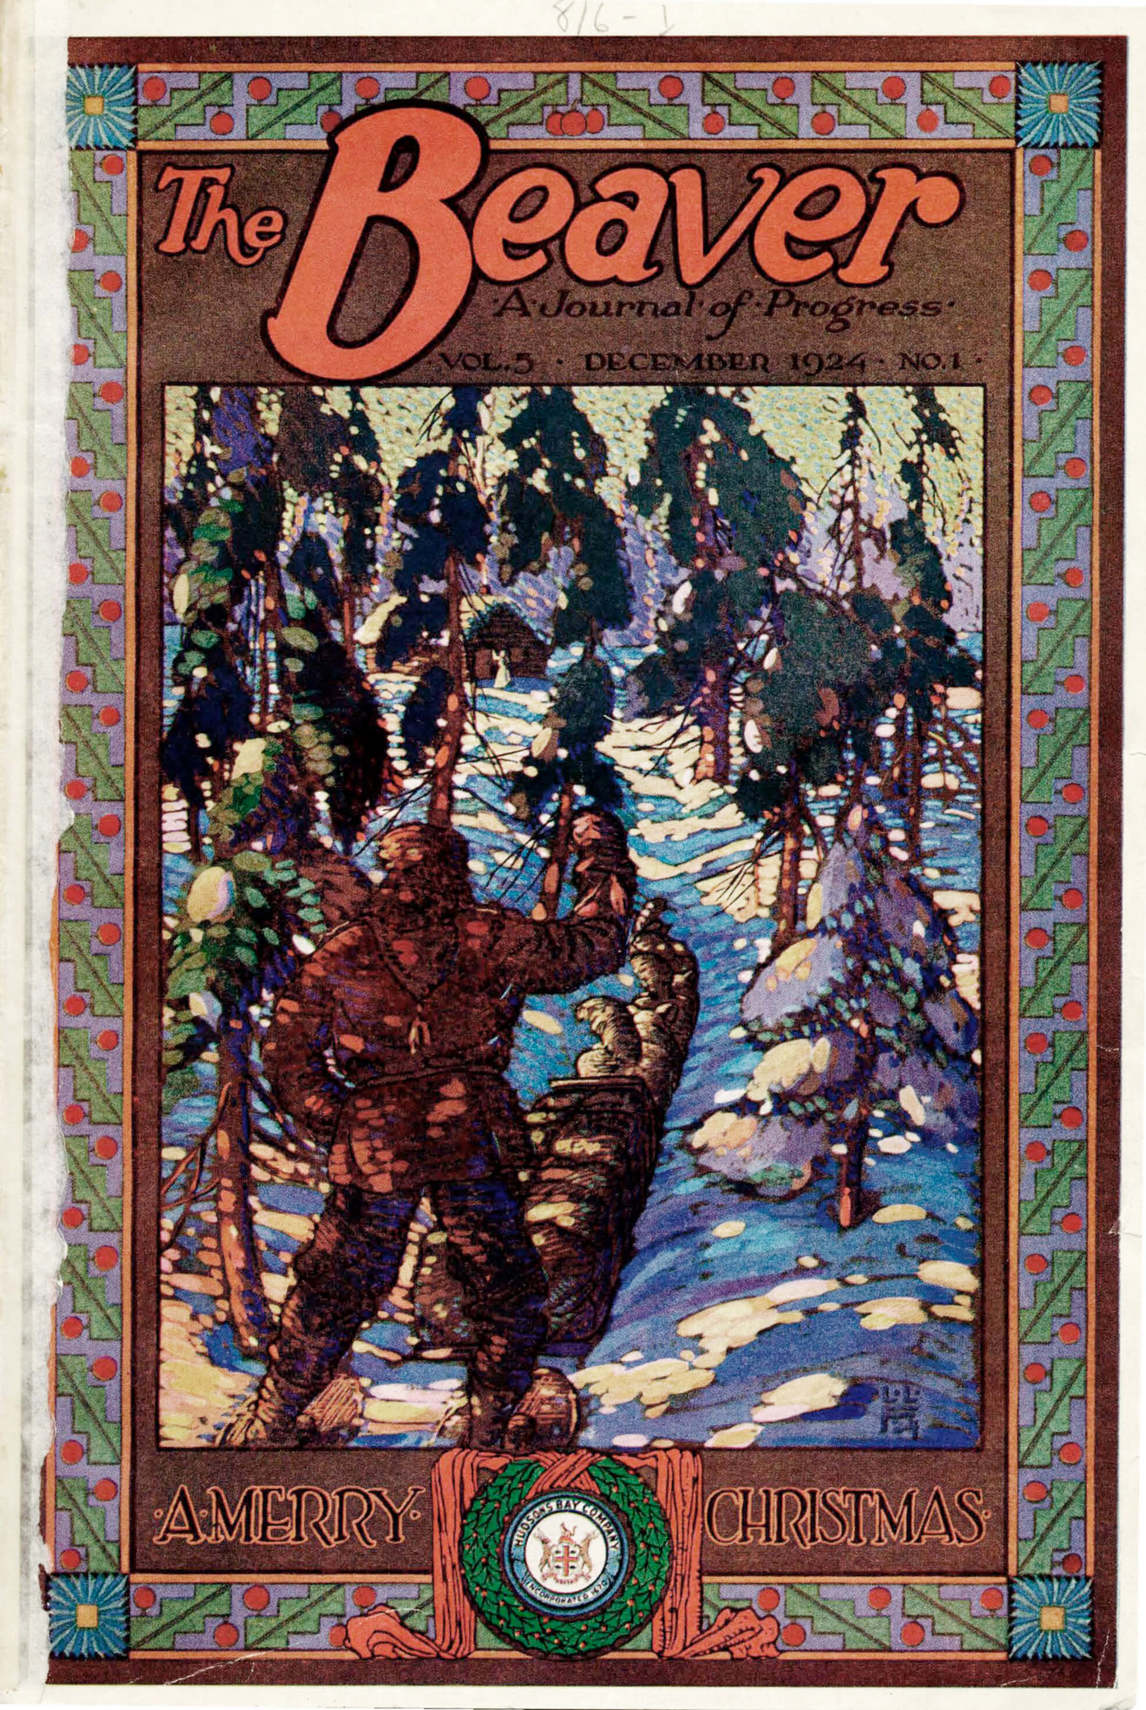 Art Canada Institute, Lionel LeMoine Fitzgerald, Cover image of The Beaver 5, no. 1, December 1924